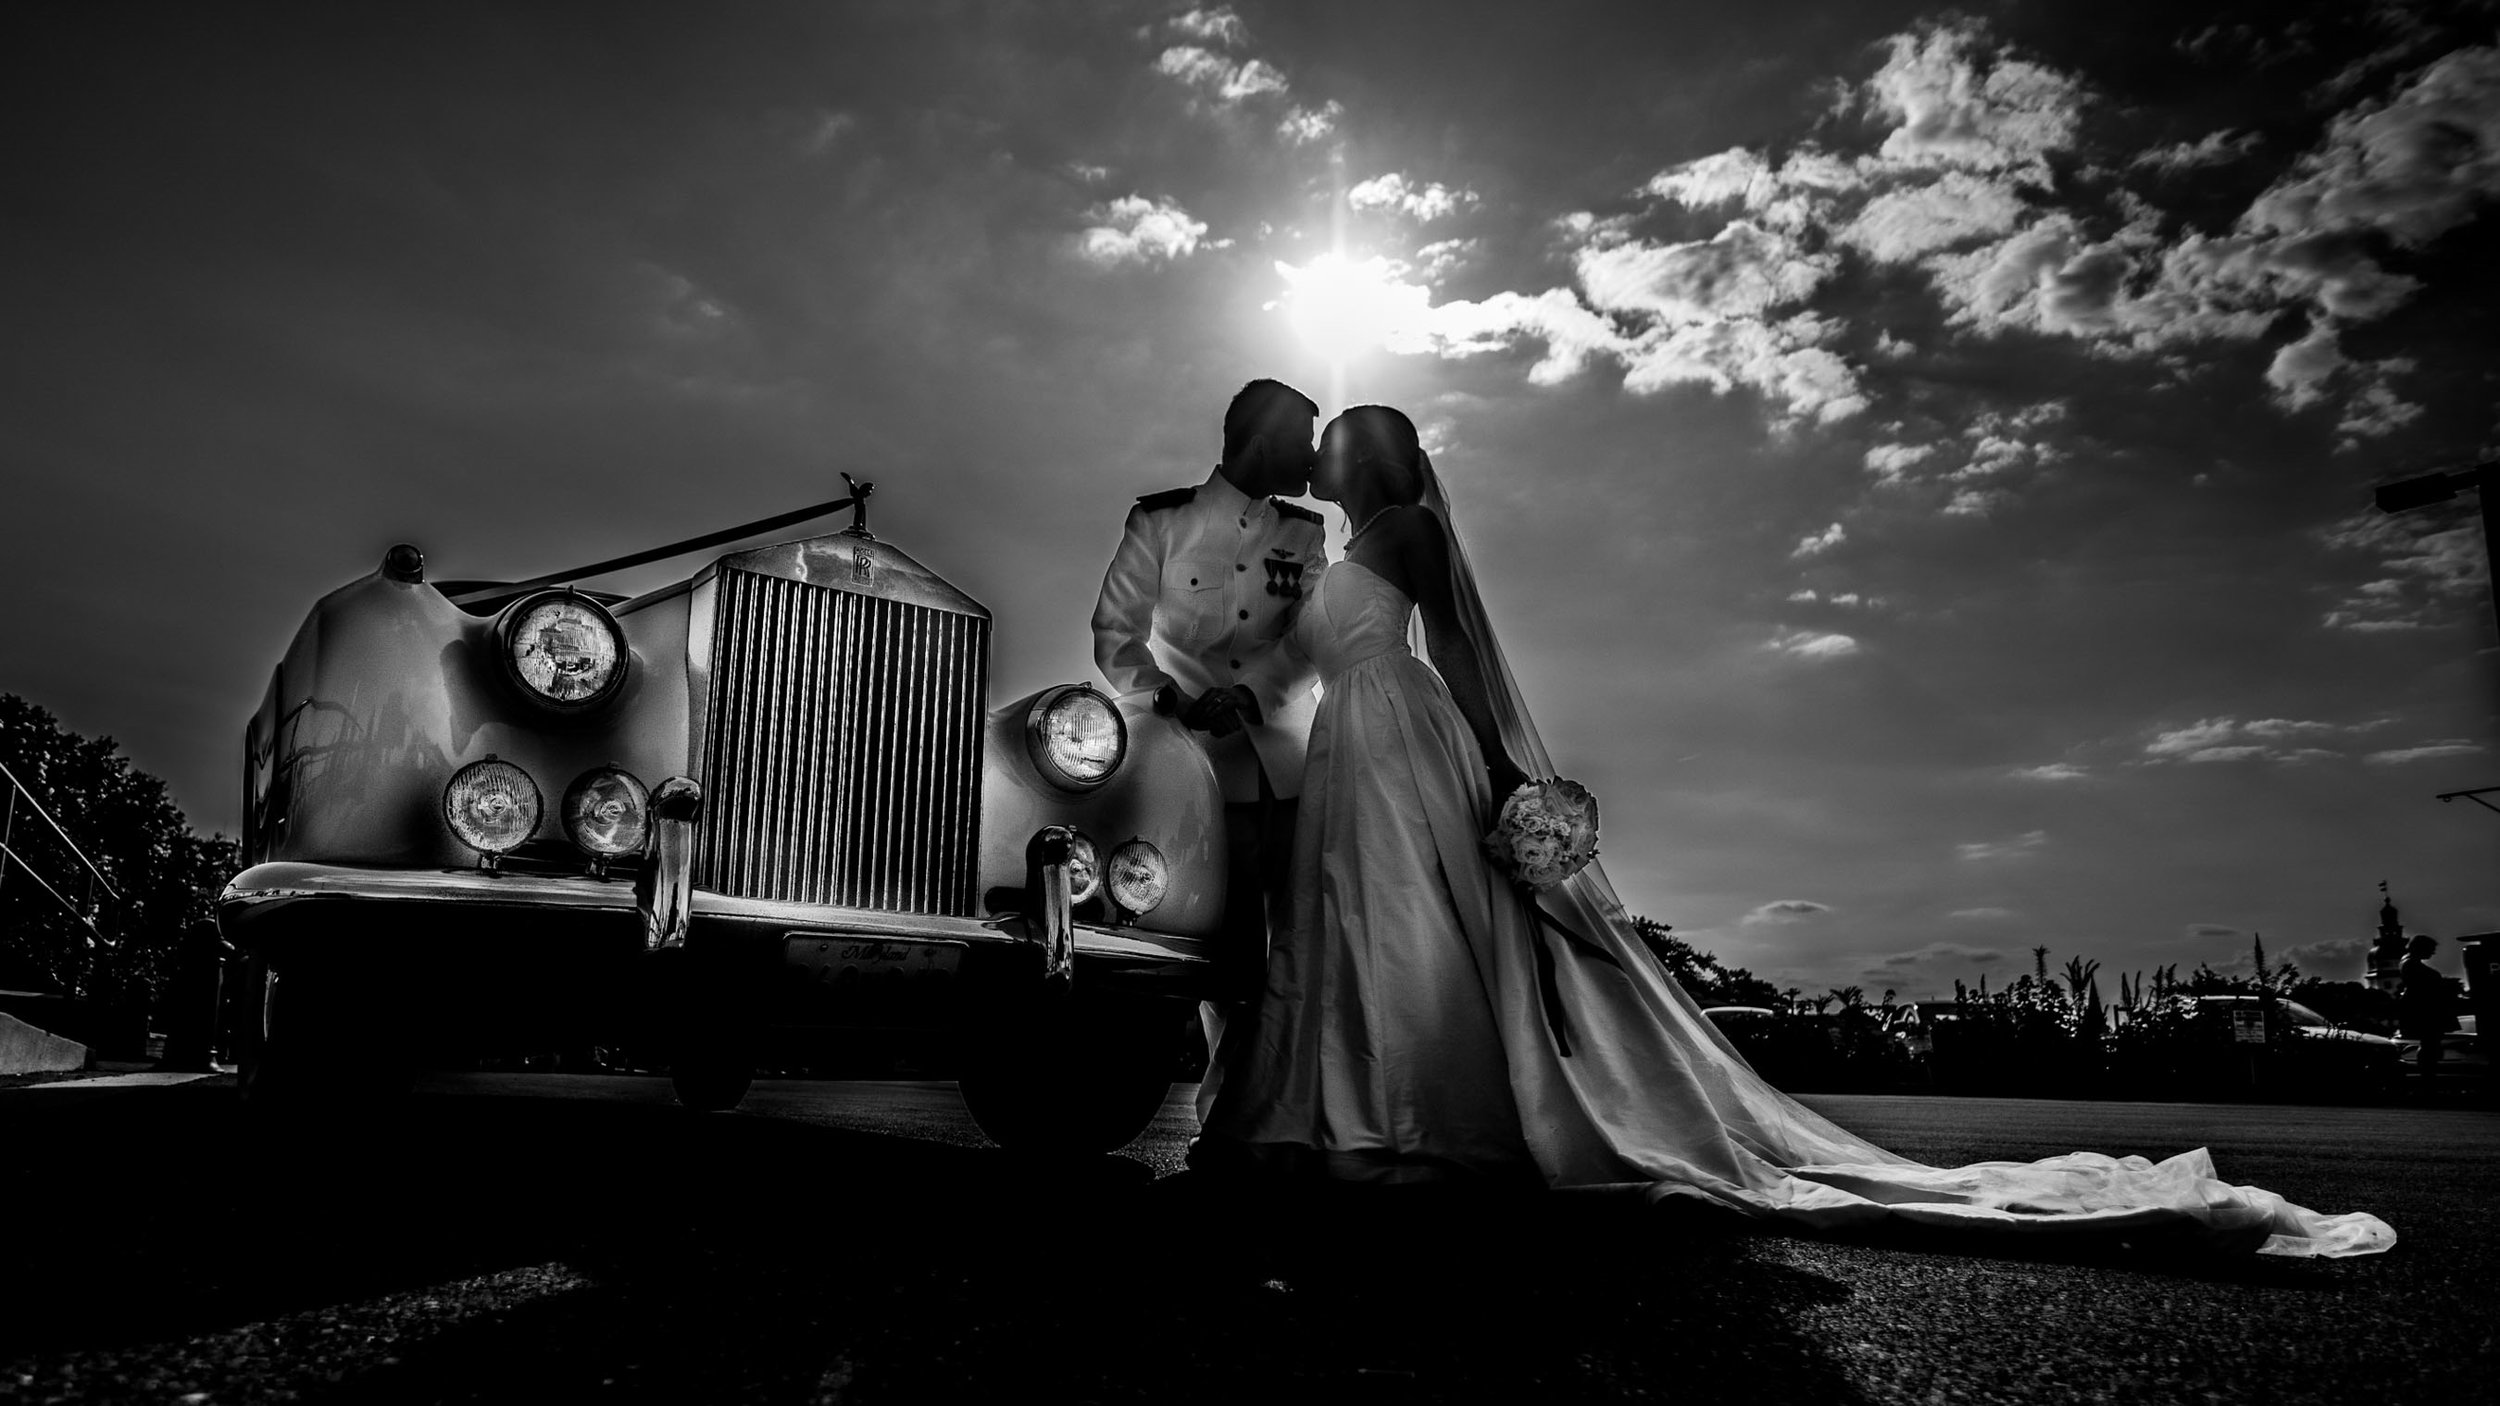 wedding+photography+leesburg+washington+dc+weddings+vadym+guliuk